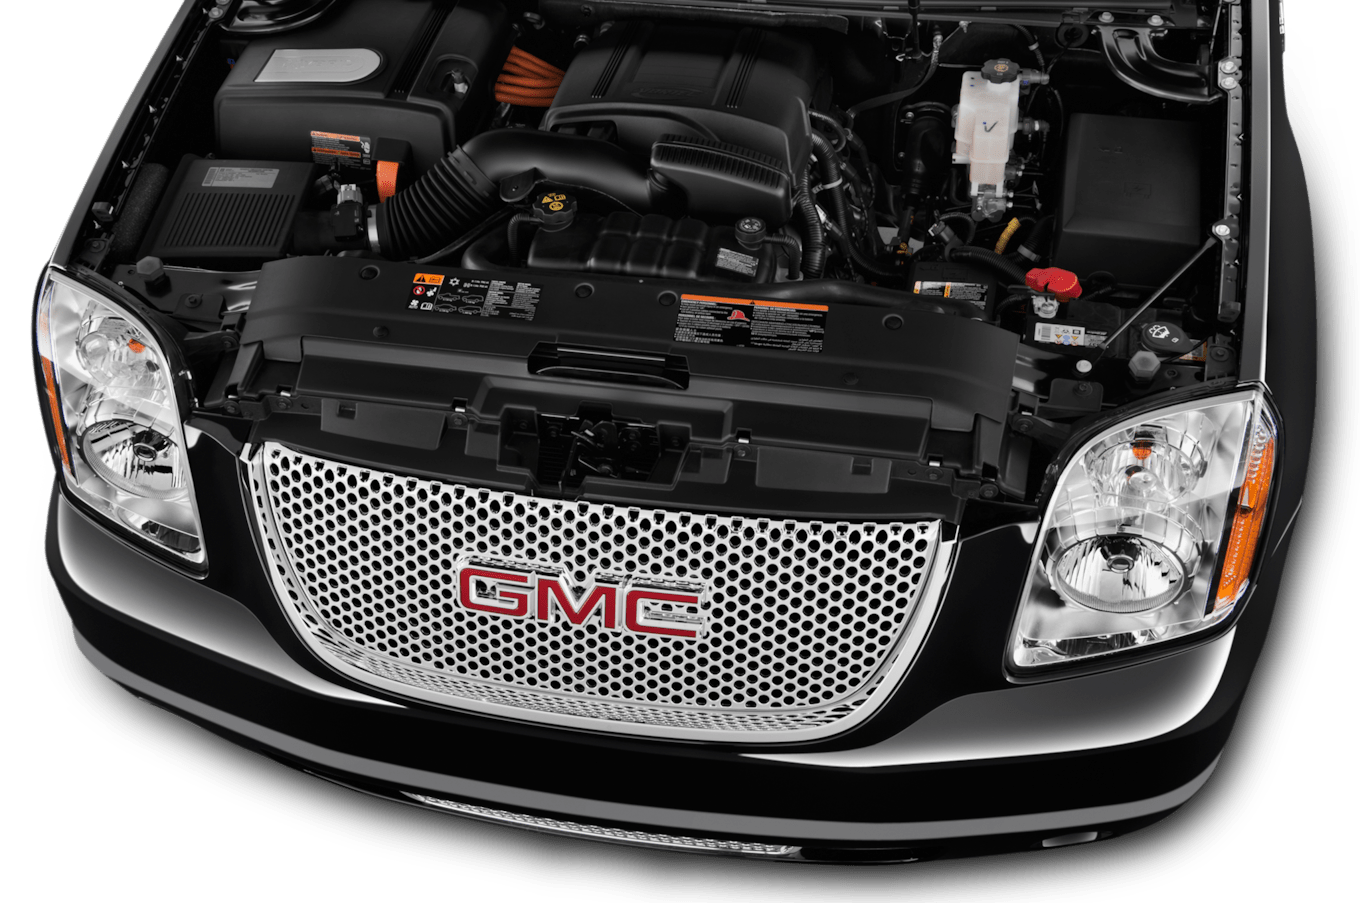 hight resolution of gmc denali engine diagram wiring diagram data 2006 gmc envoy denali engine diagram 2013 gmc yukon